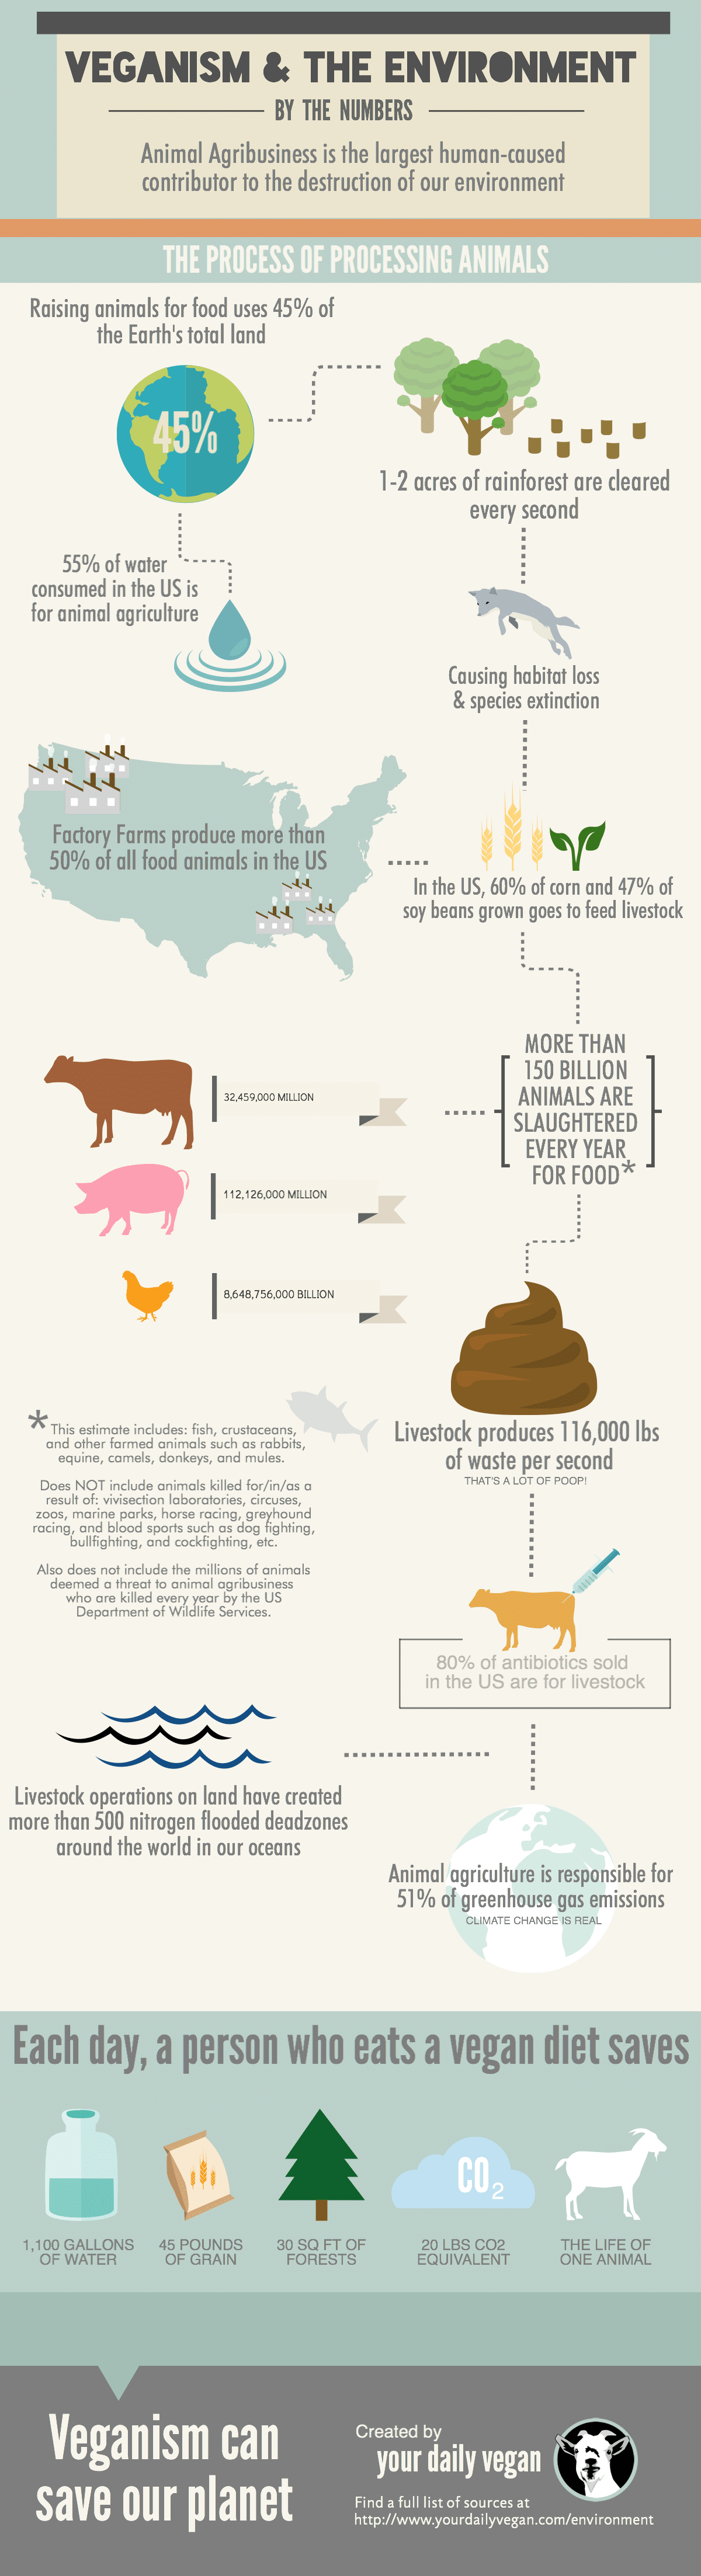 the environment and veganism infographic